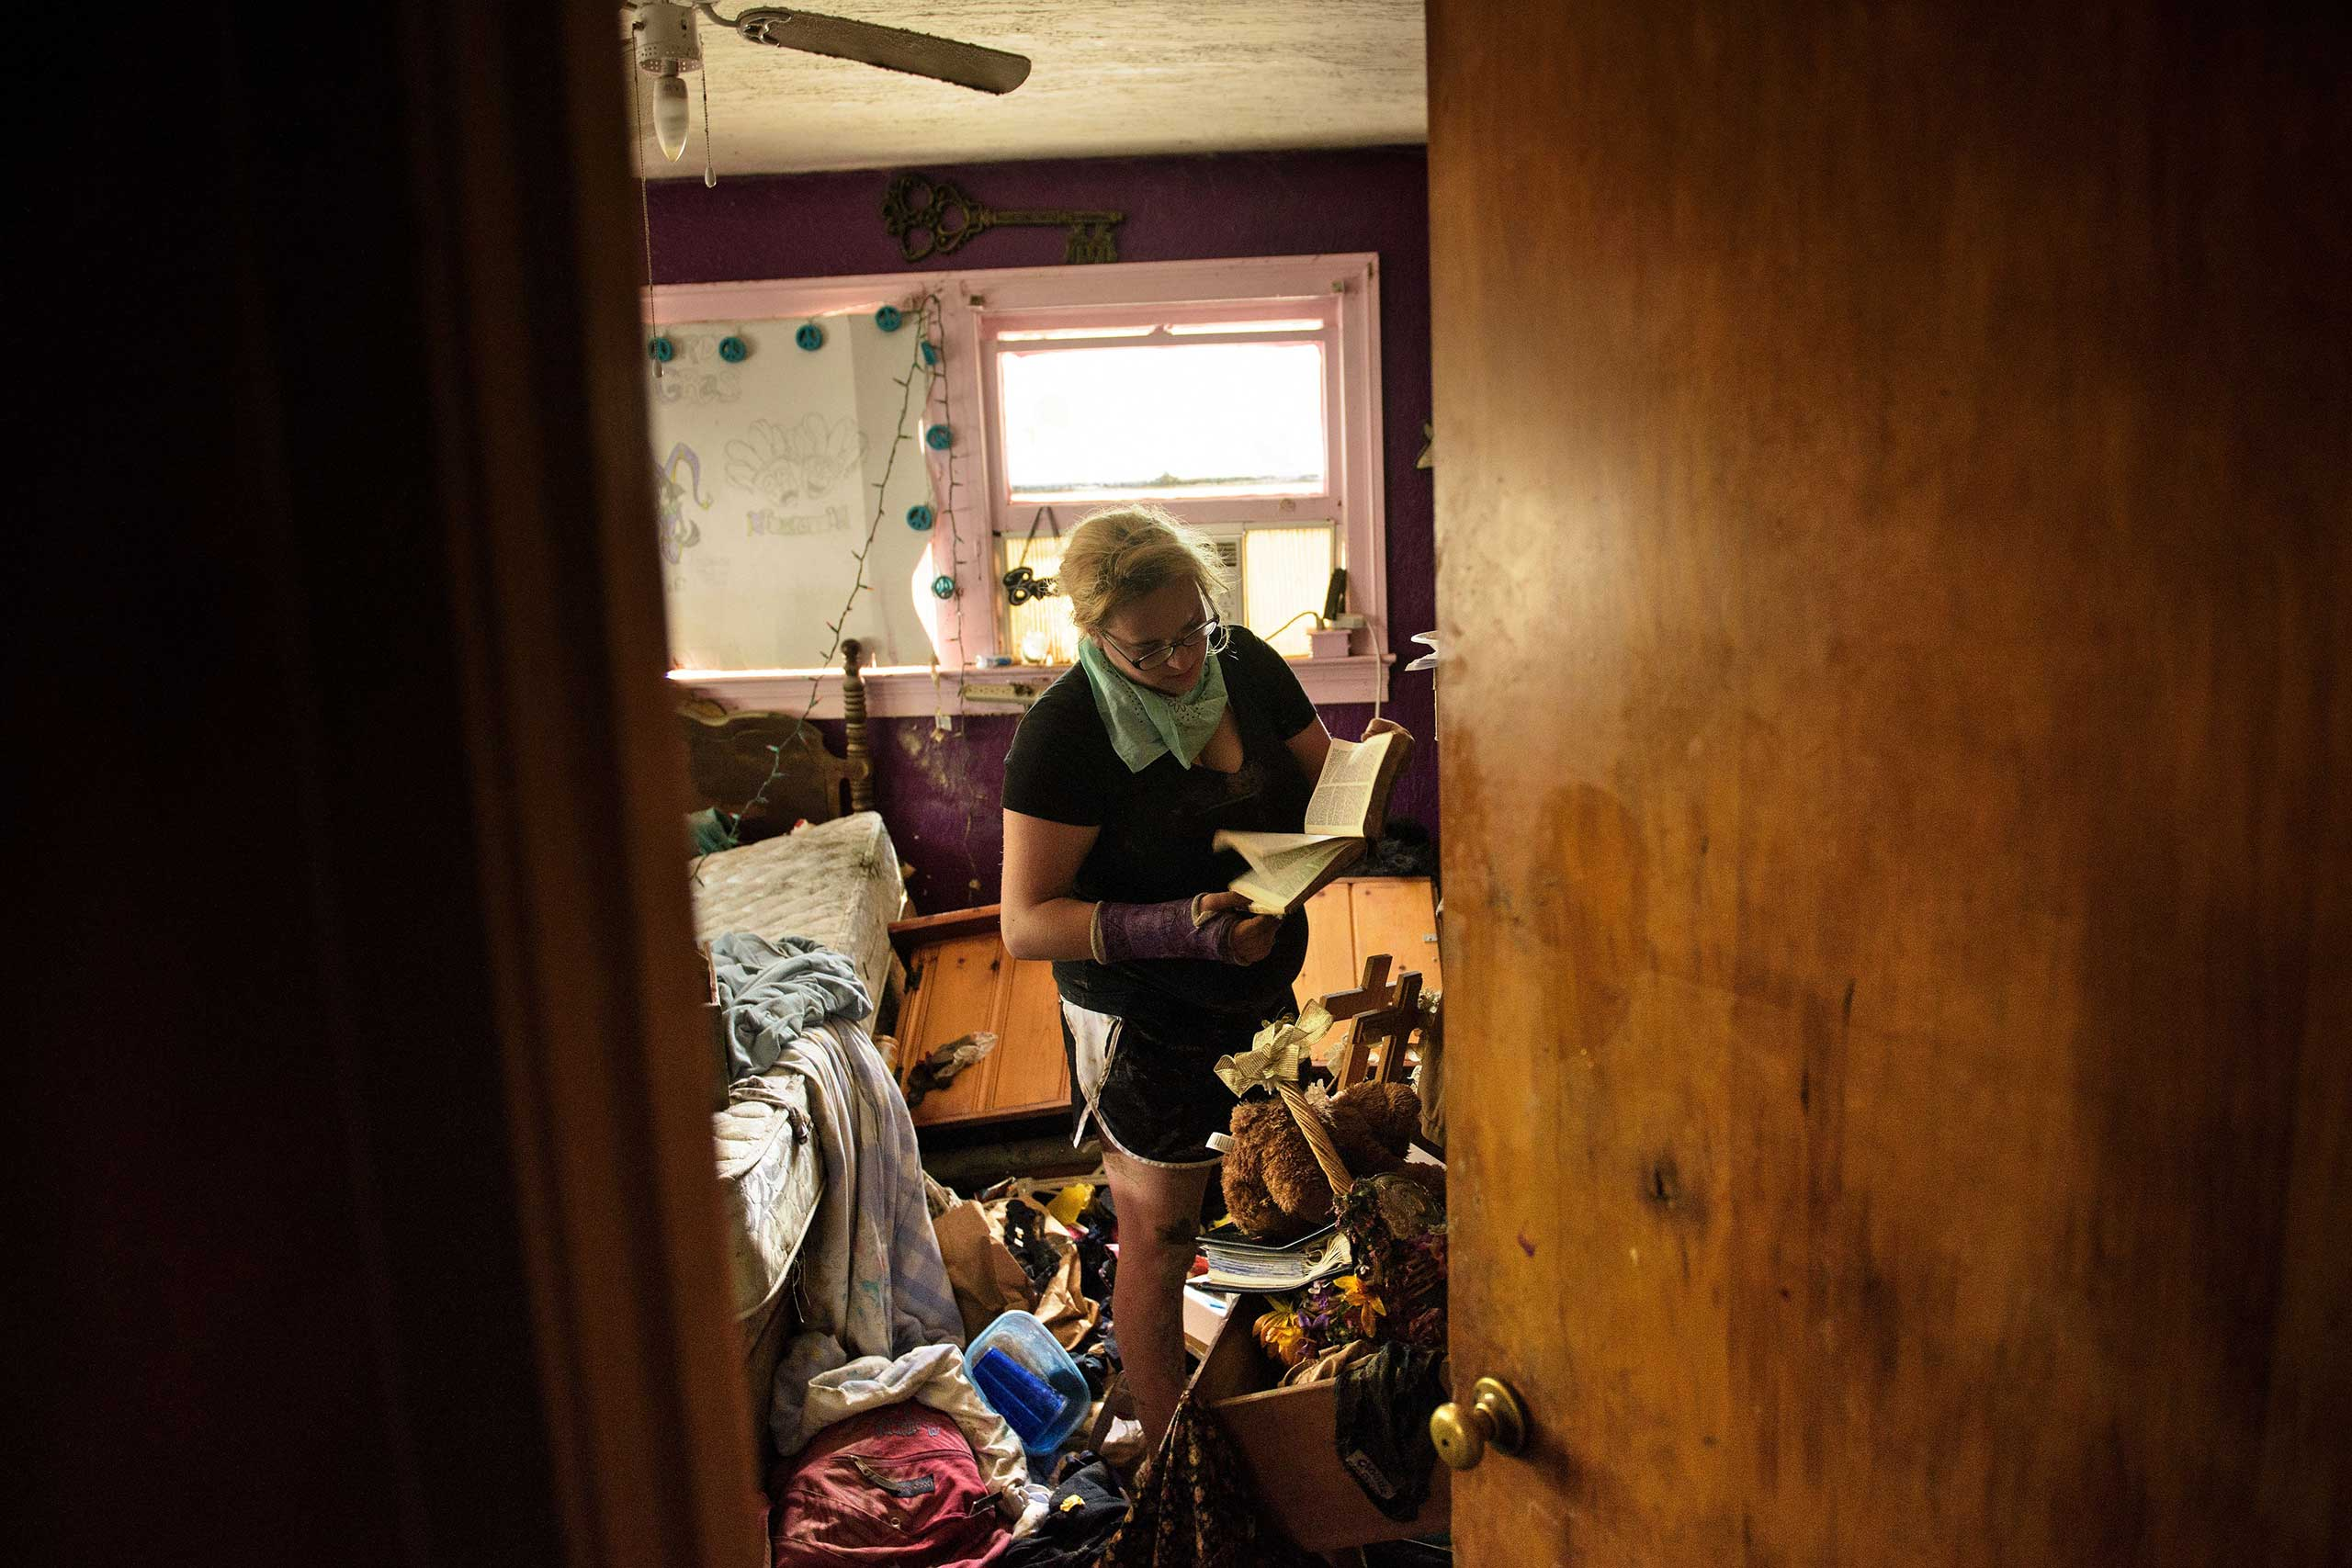 Cheyenne Hughes looks at a bible while salvaging items in her family's home after flooding in Denham, La., on Aug. 17, 2016.